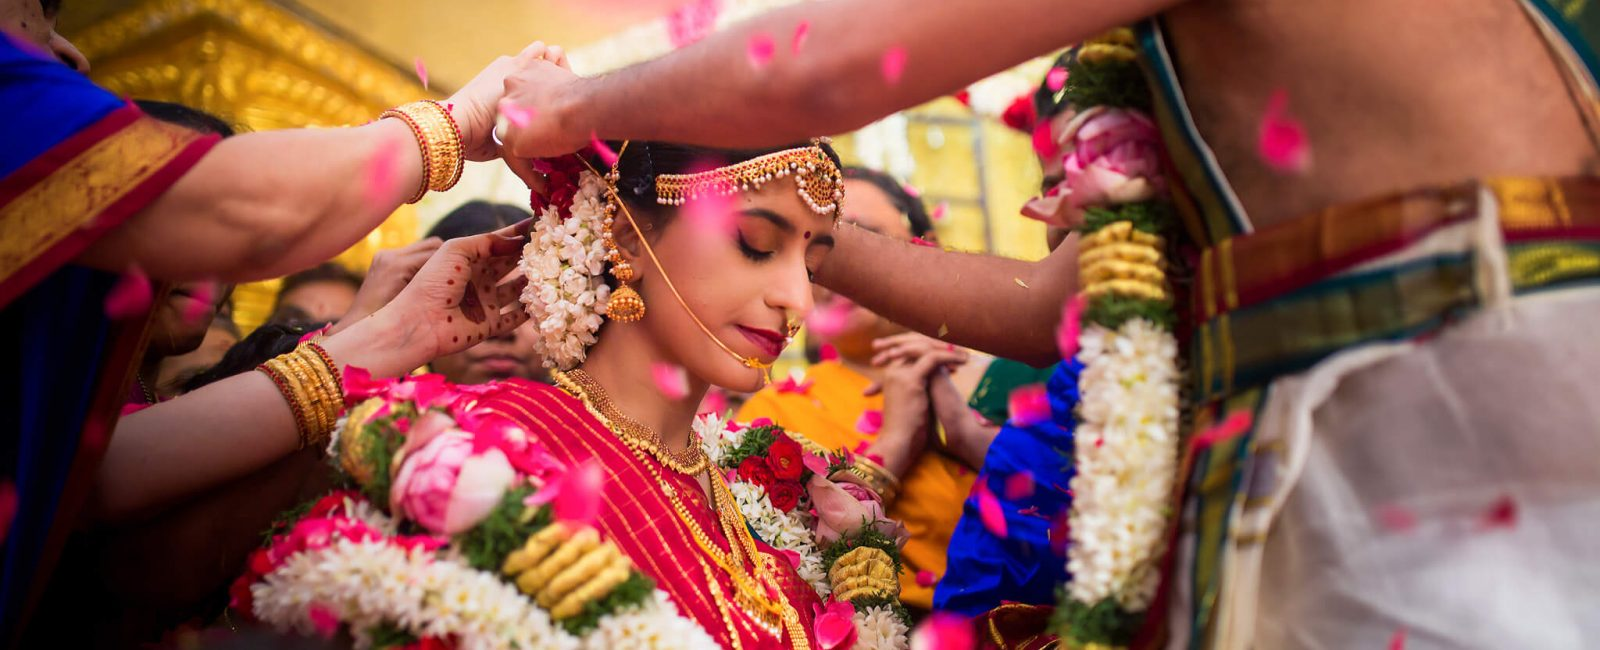 Creative Tamil Wedding Photography Poses Wedding Photography Poses